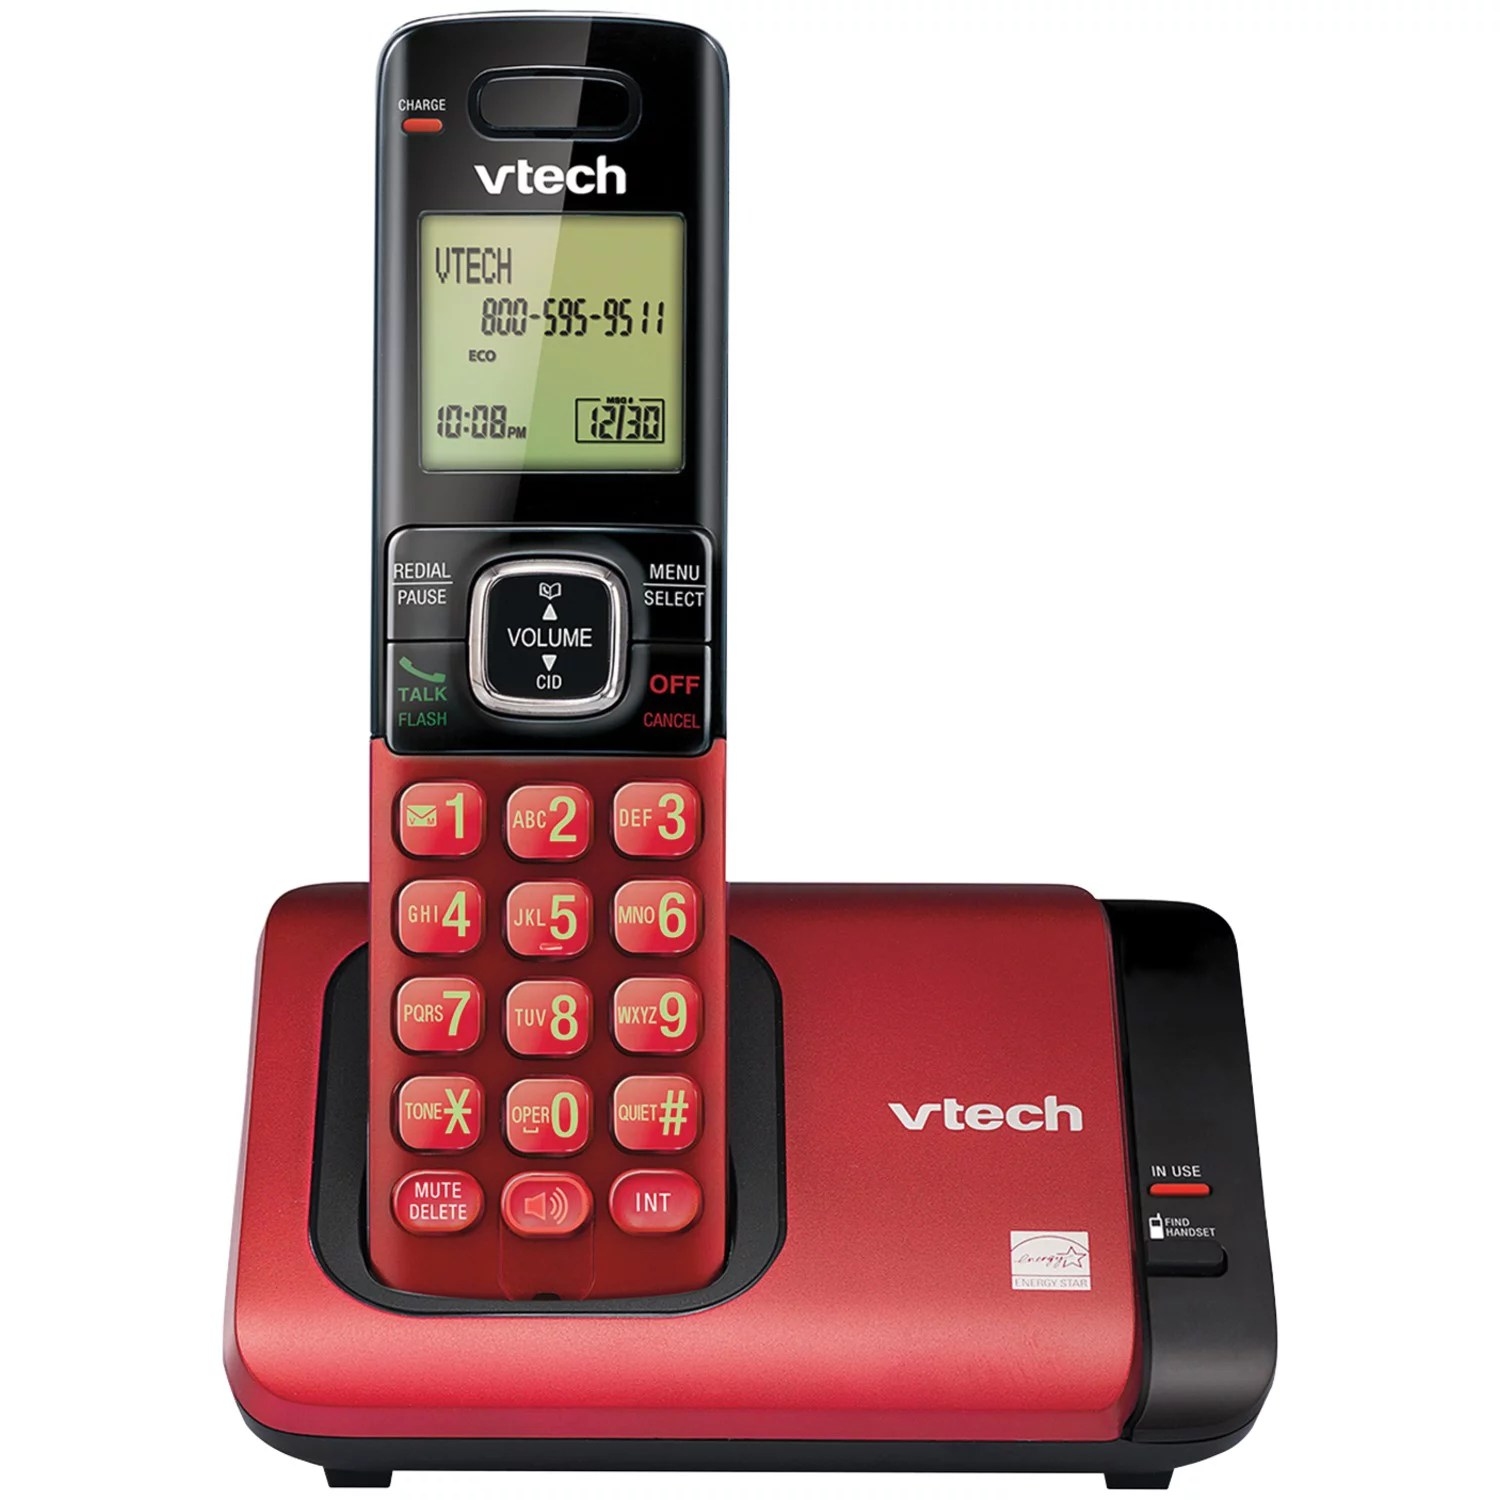 VTech CS6719-16 Cordless Phone System With Caller ID/Call